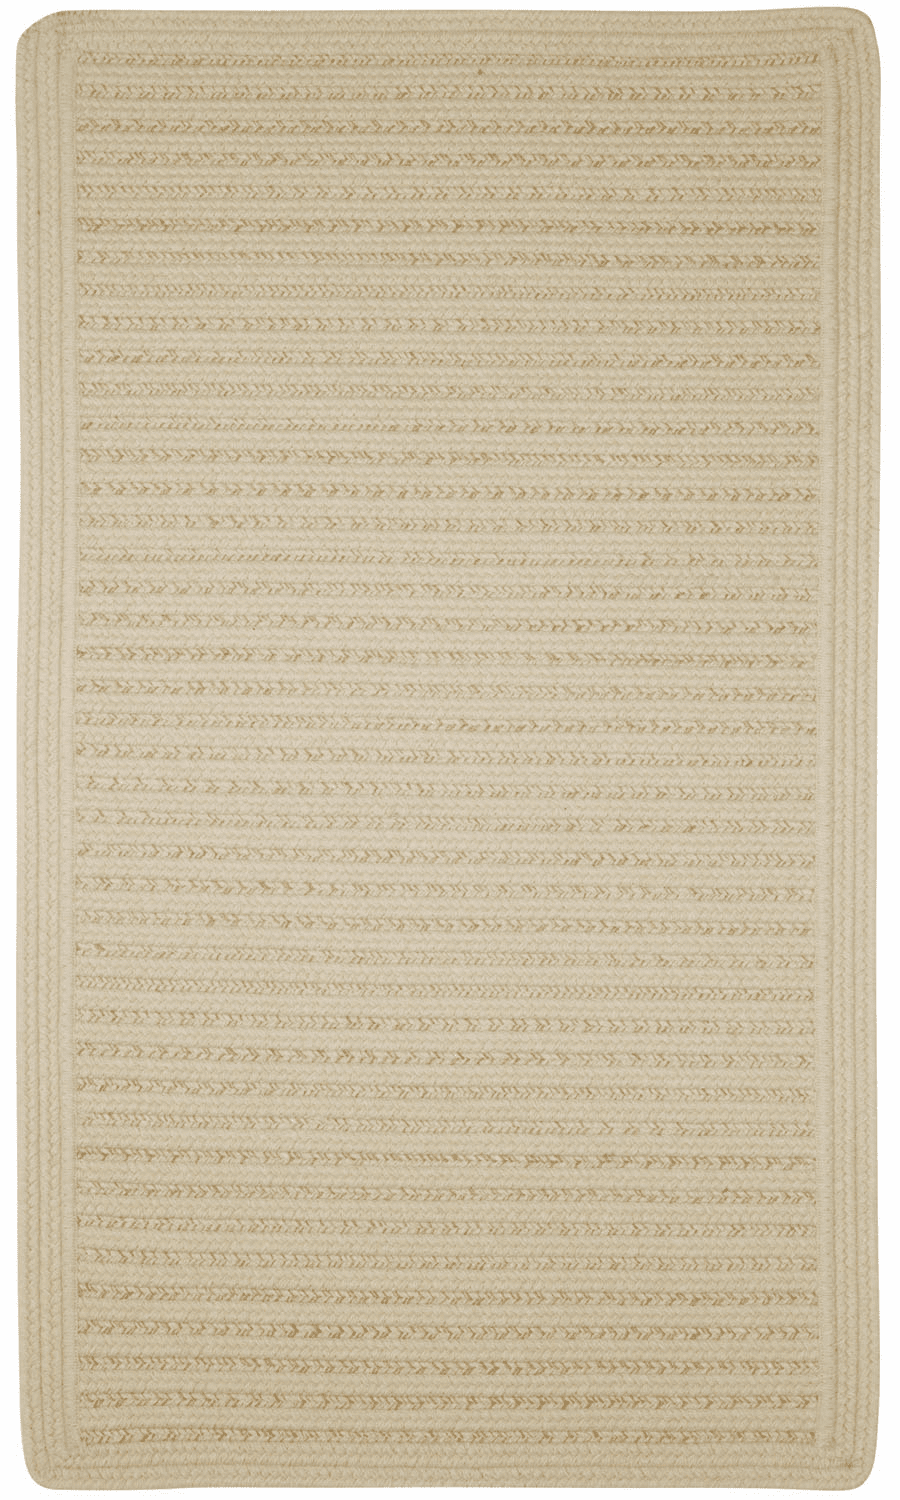 Hand-Braided Oats Rug